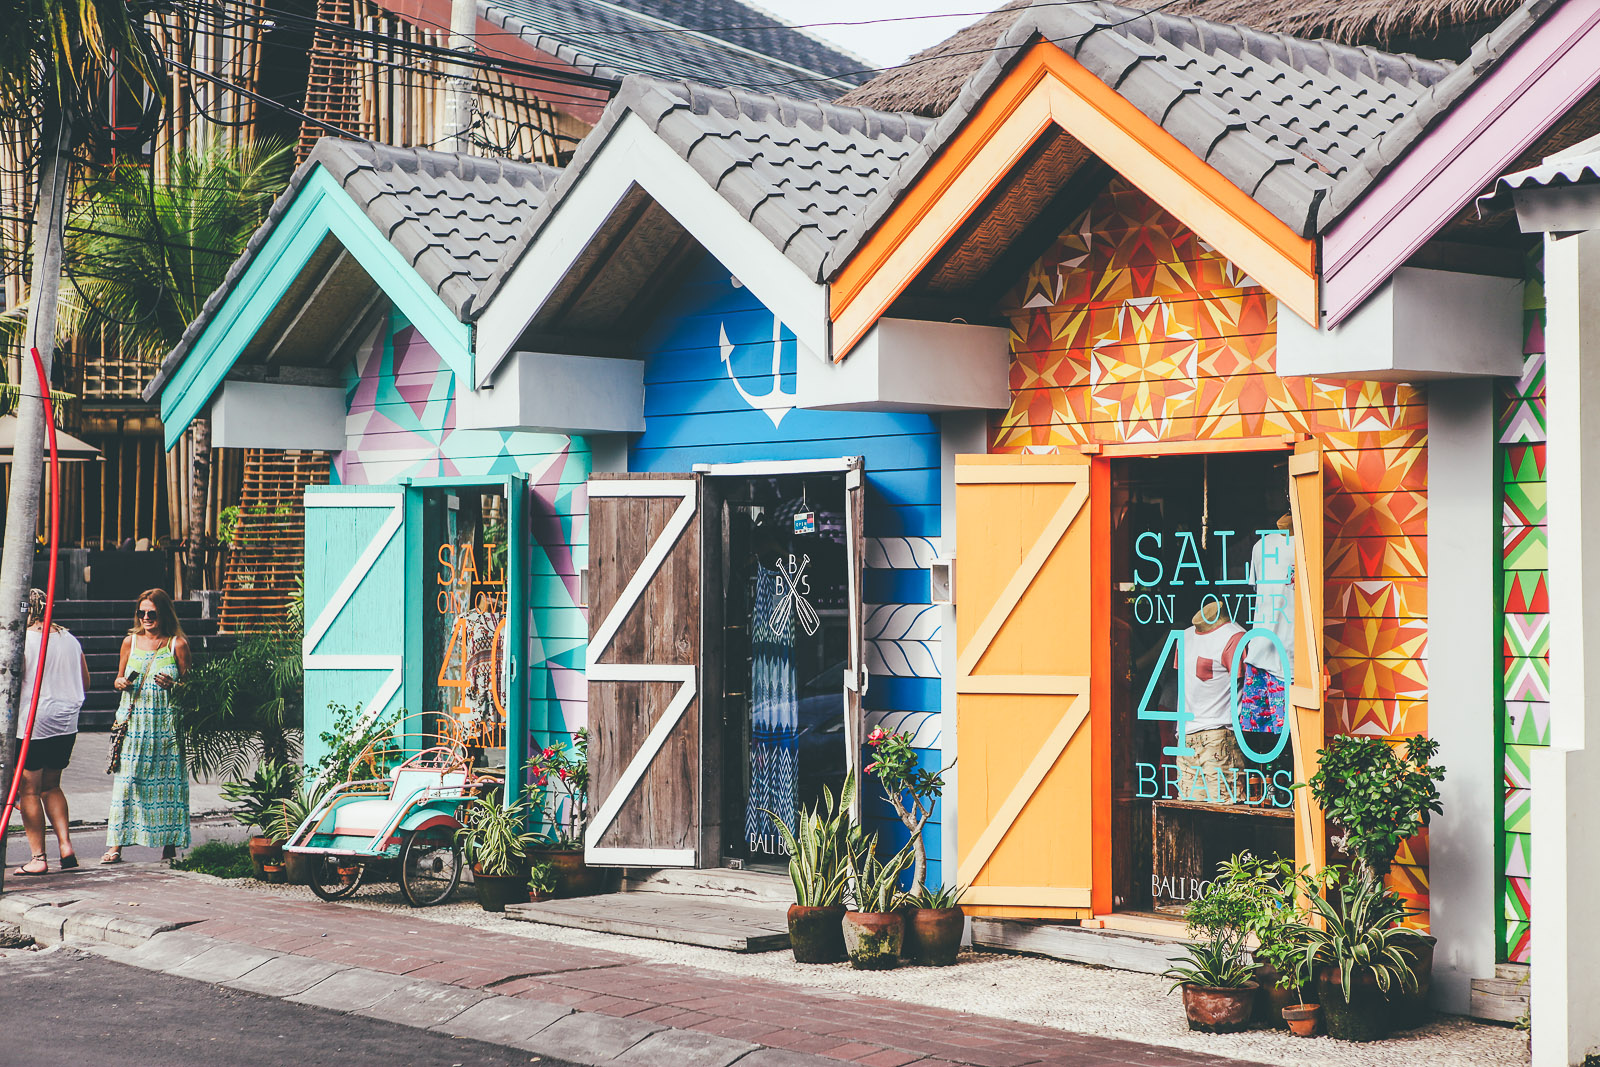 Our guide to Seminyak